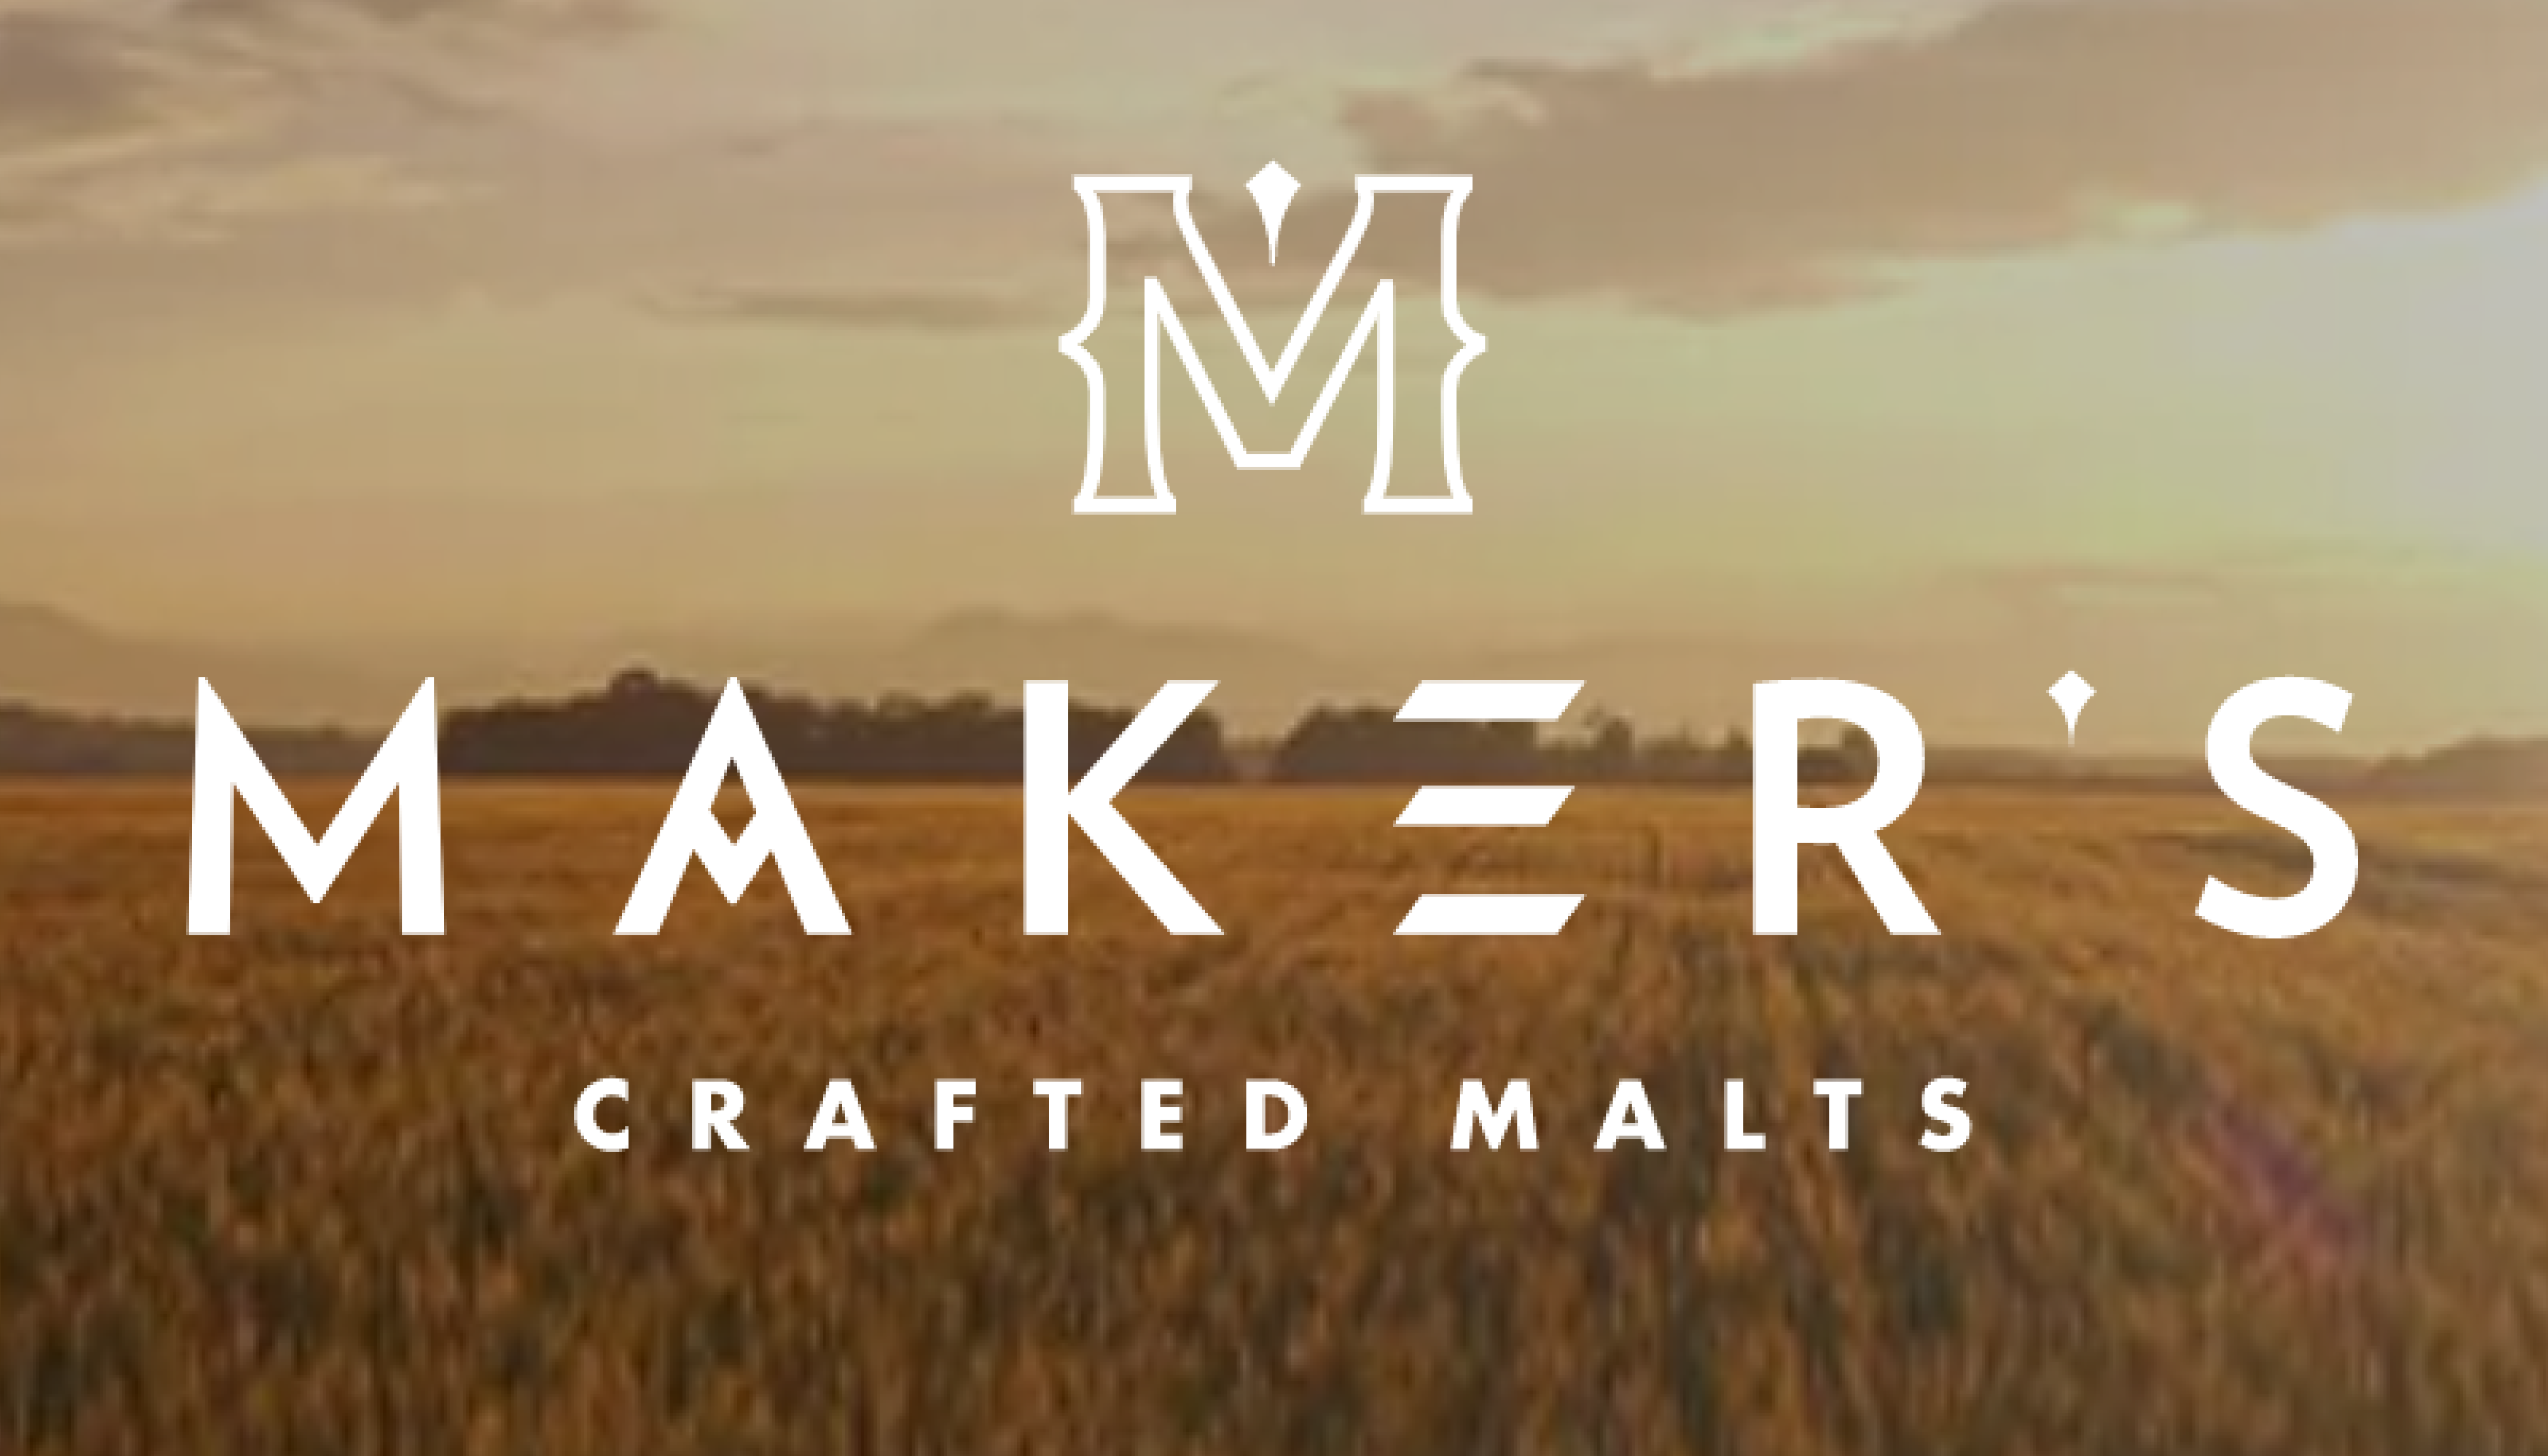 Maker's Crafted Malts